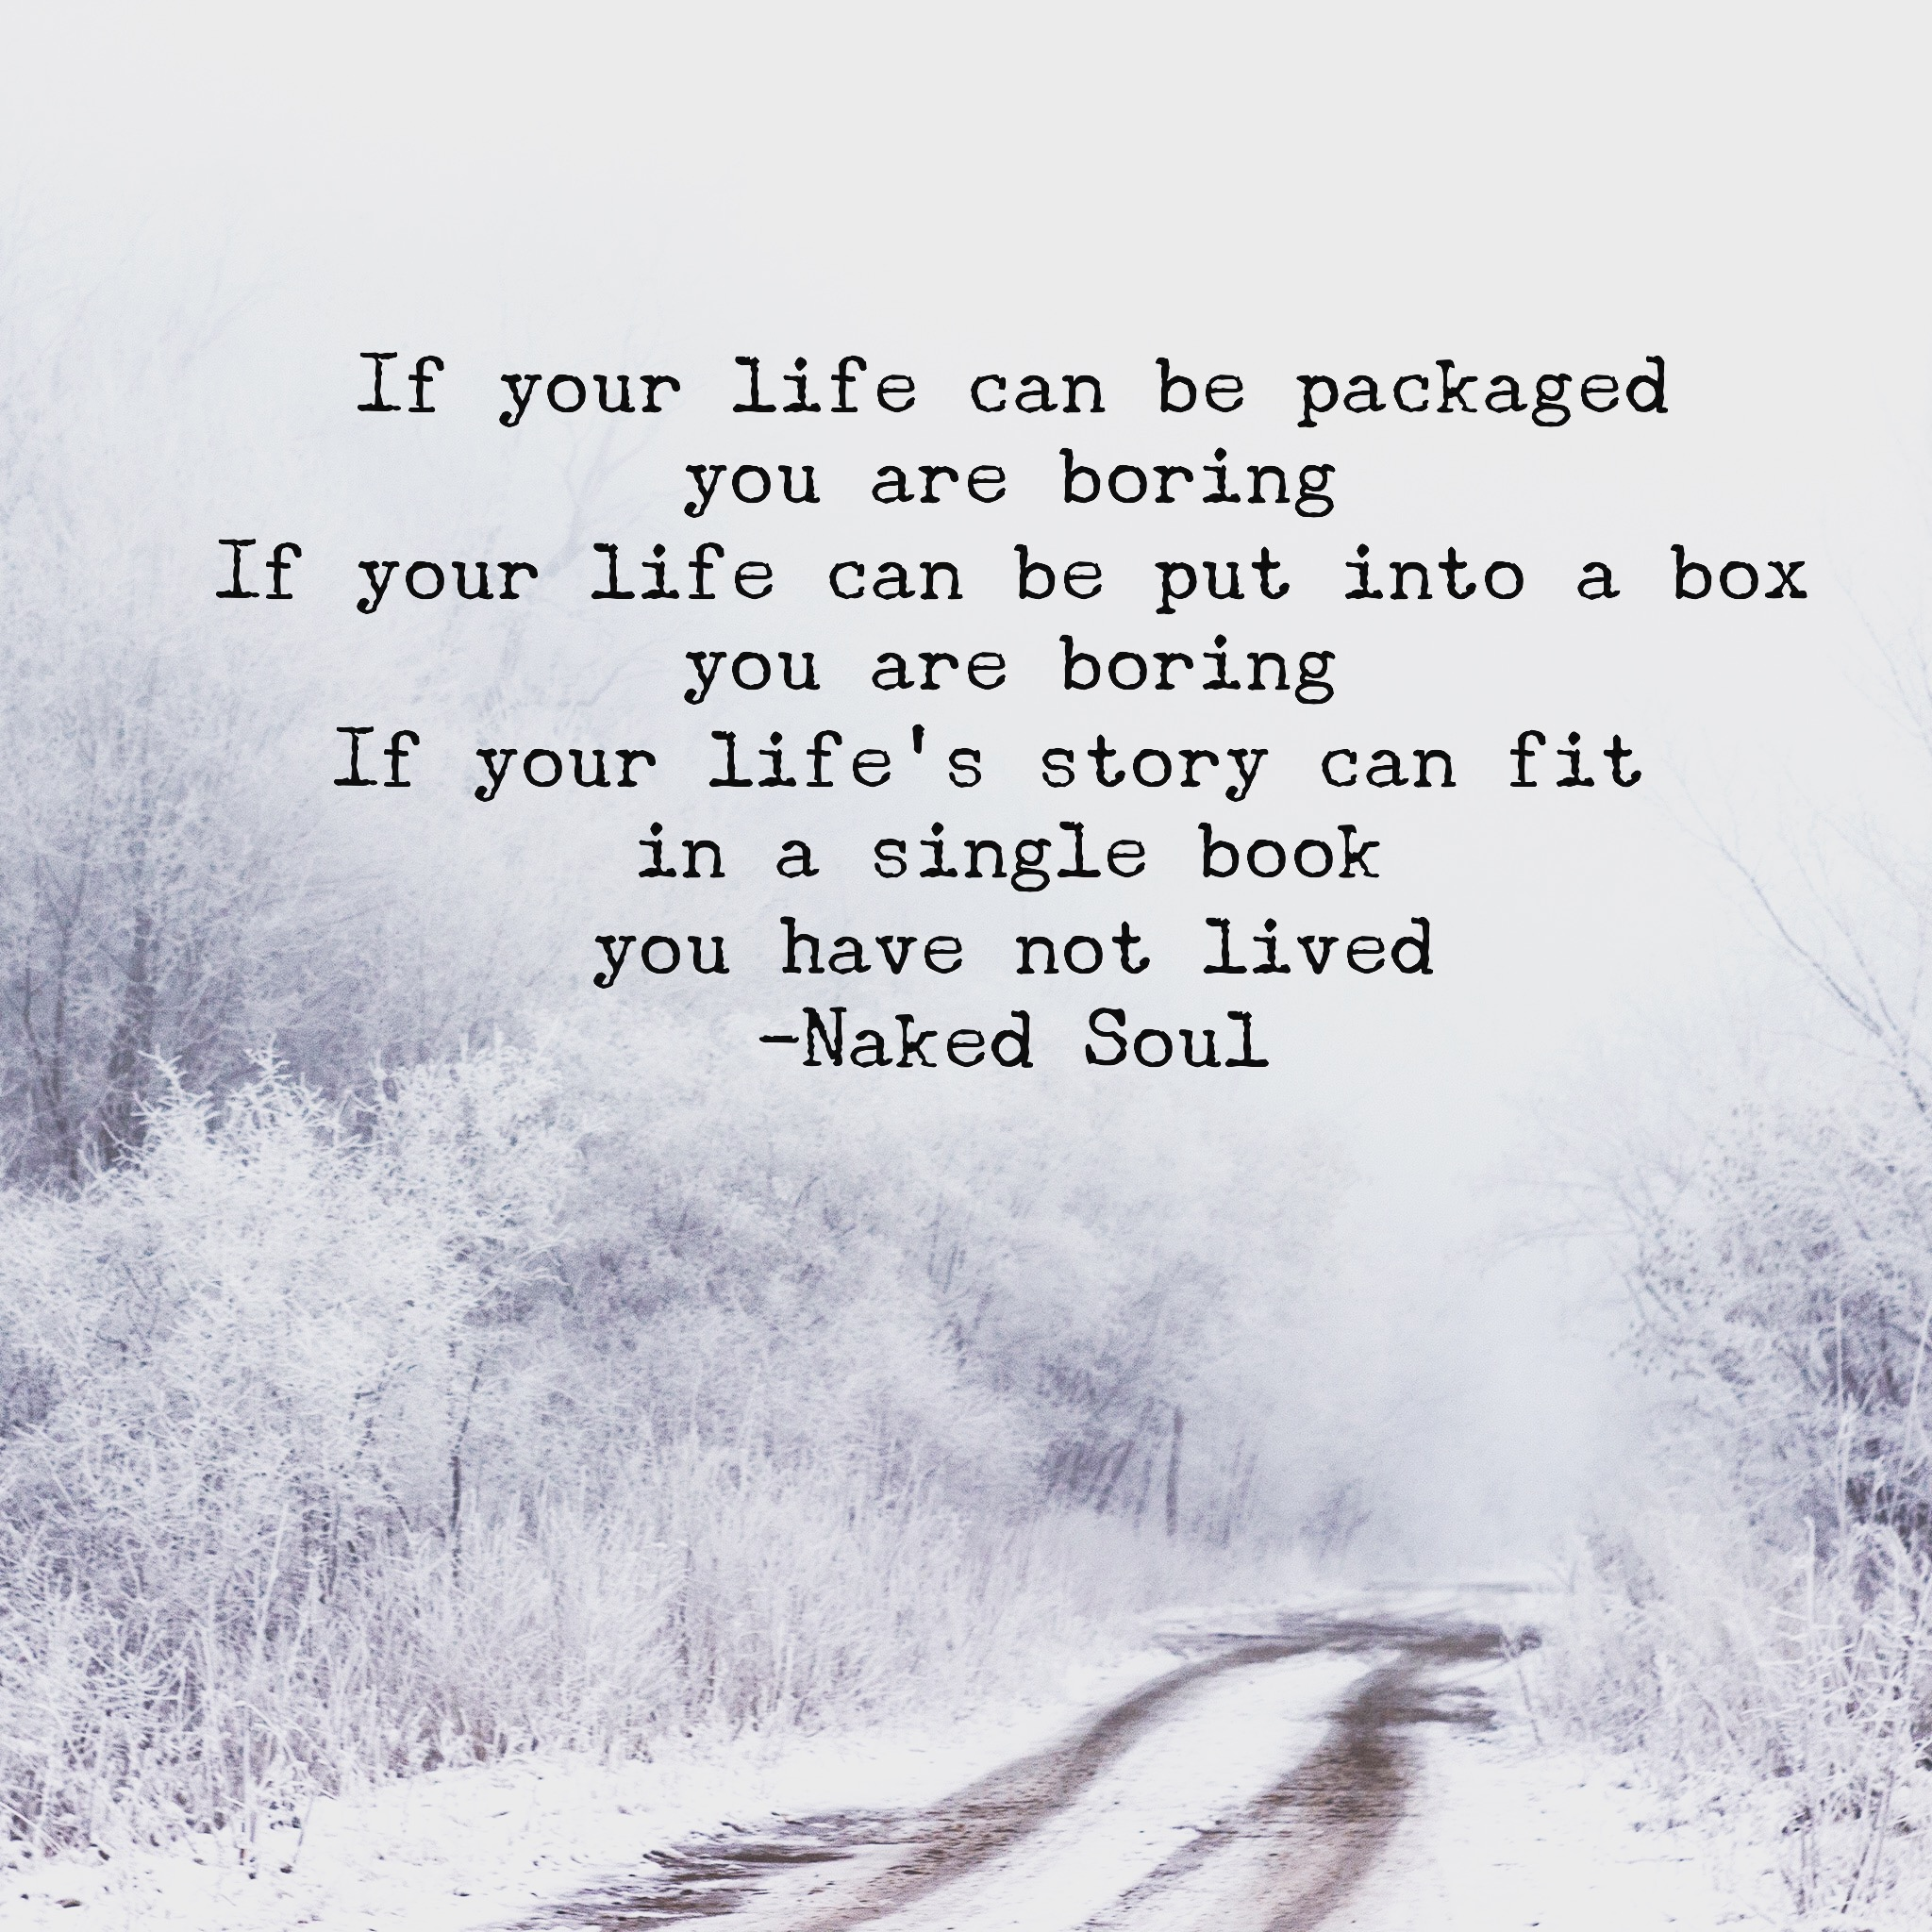 if your life can be packaged you are boring